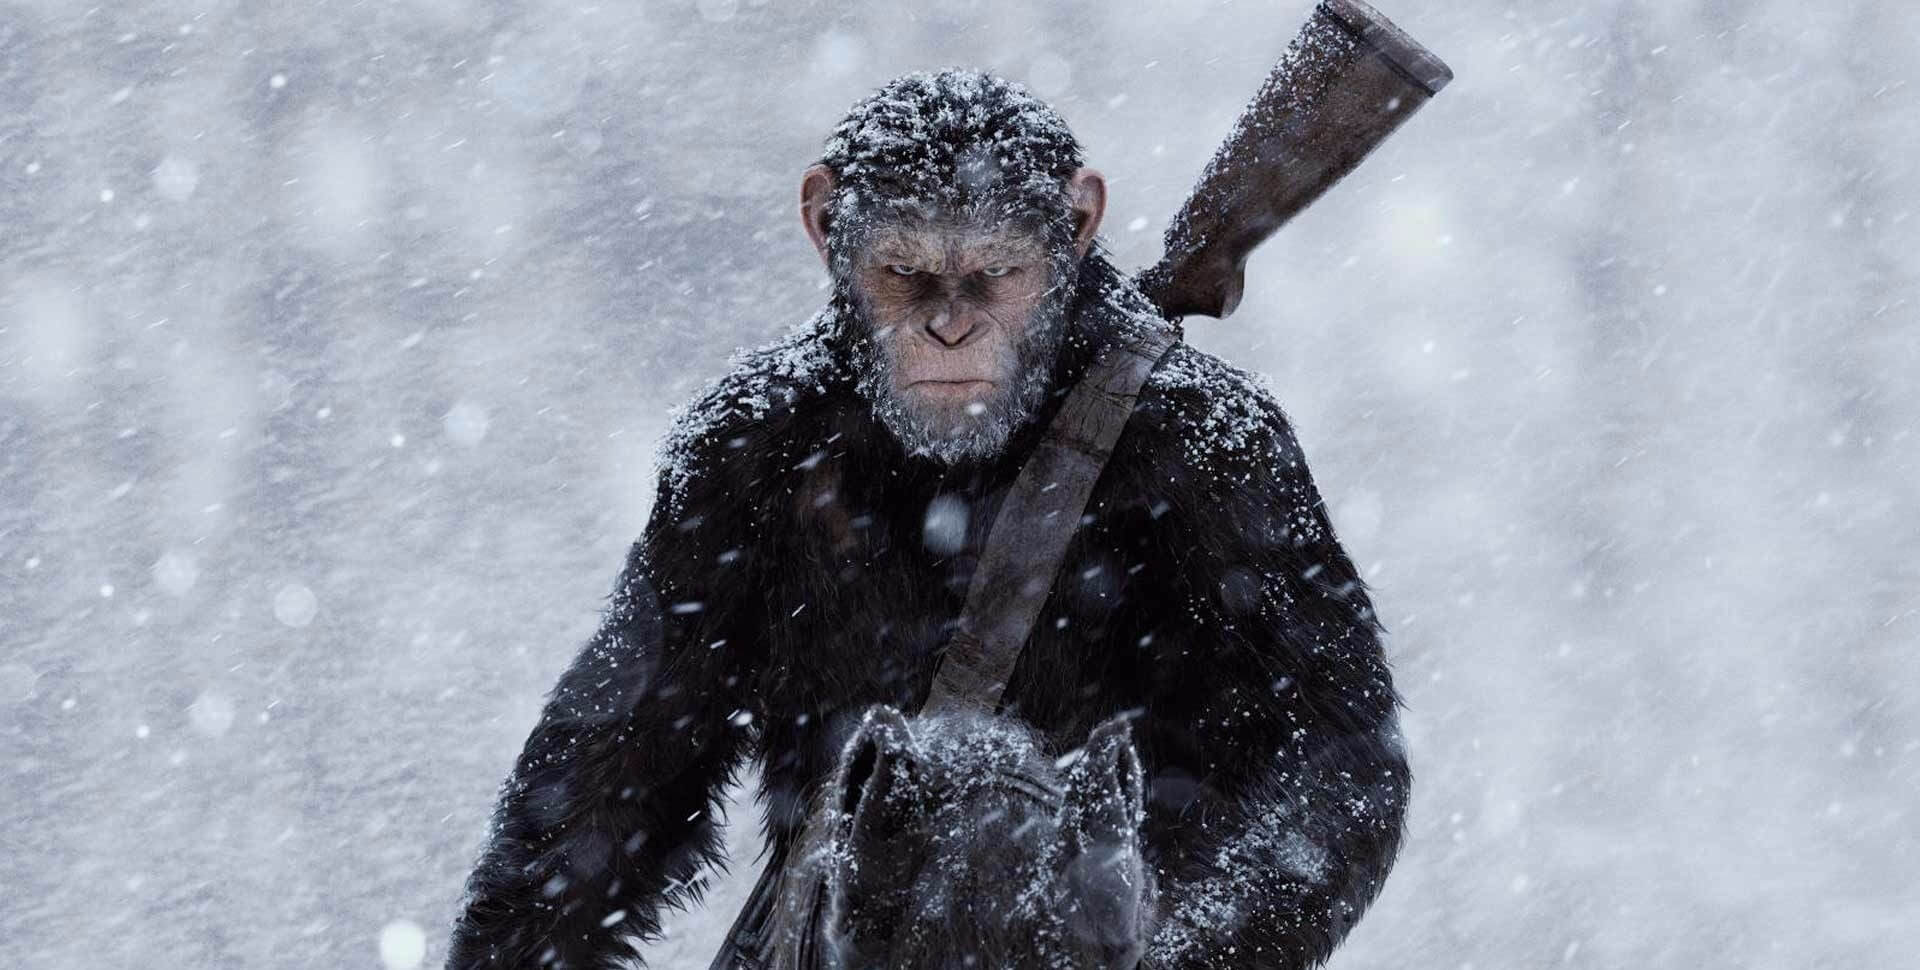 War for the Planet of the Apes 2017 Spoiler Free Movie Review